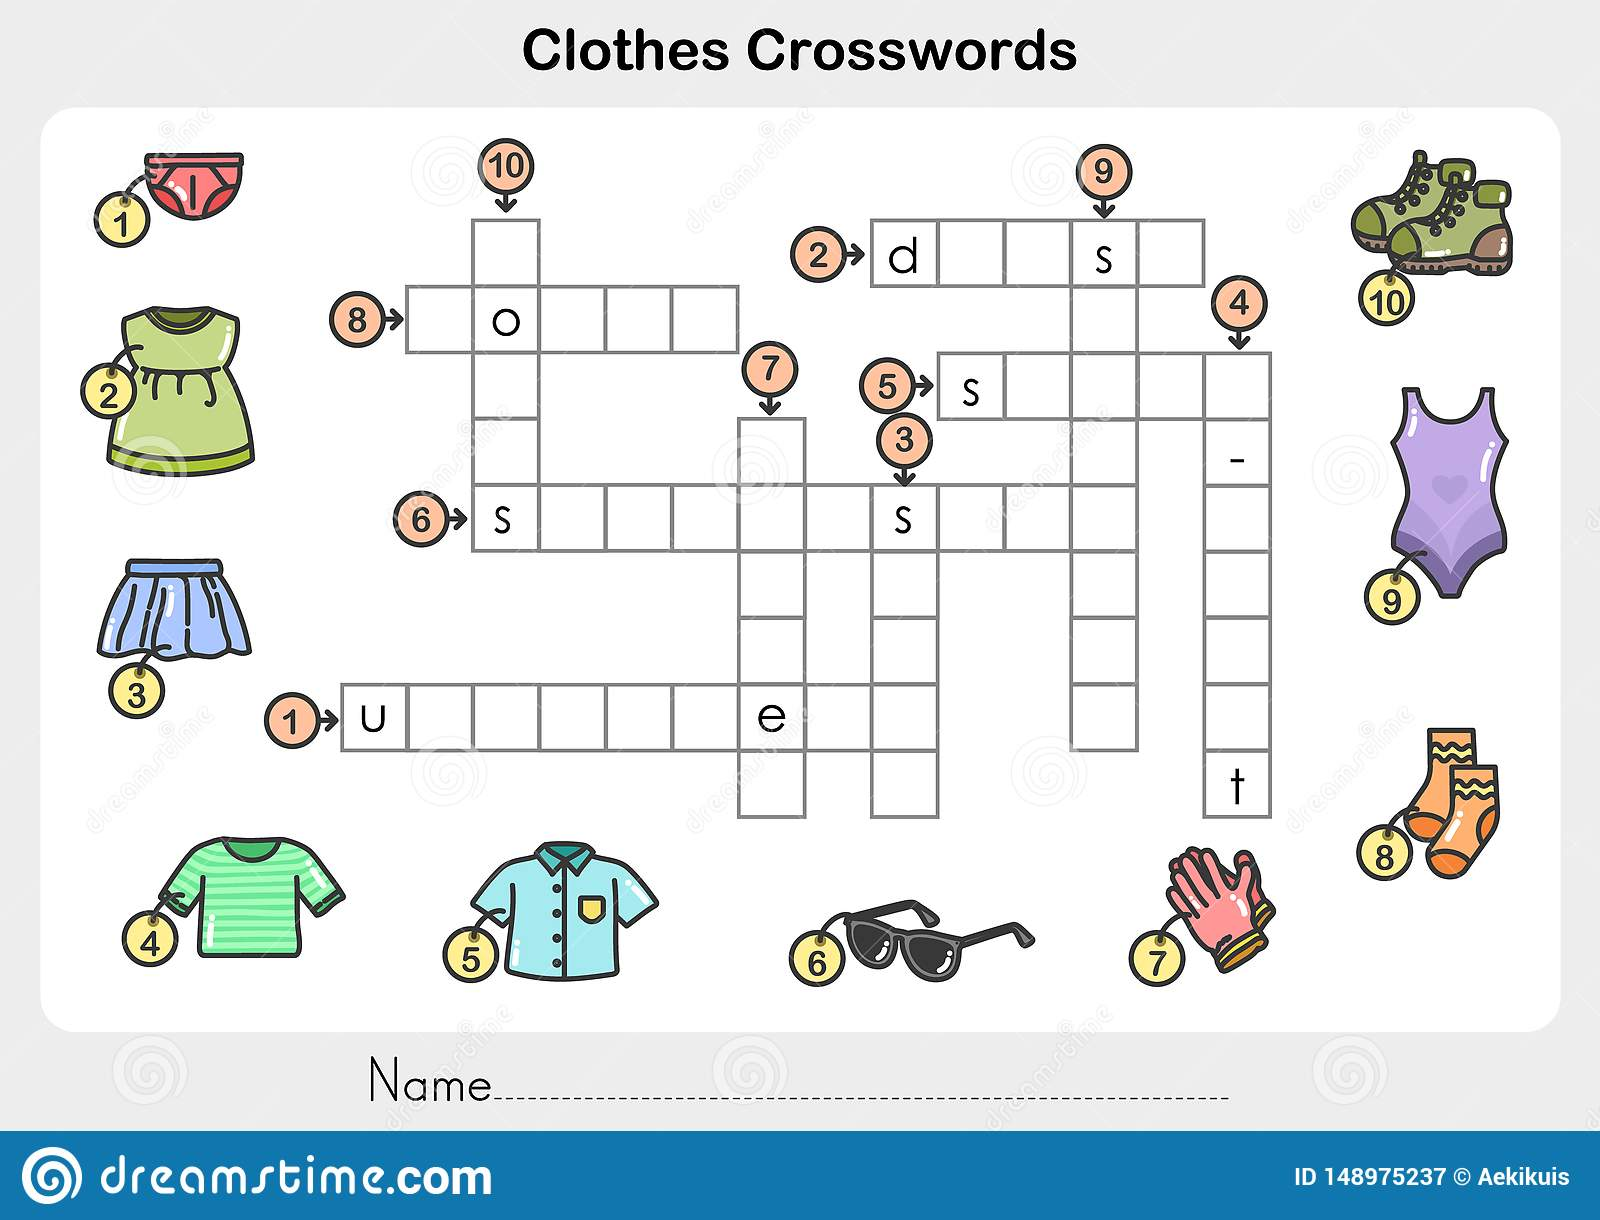 Clothes Crosswords